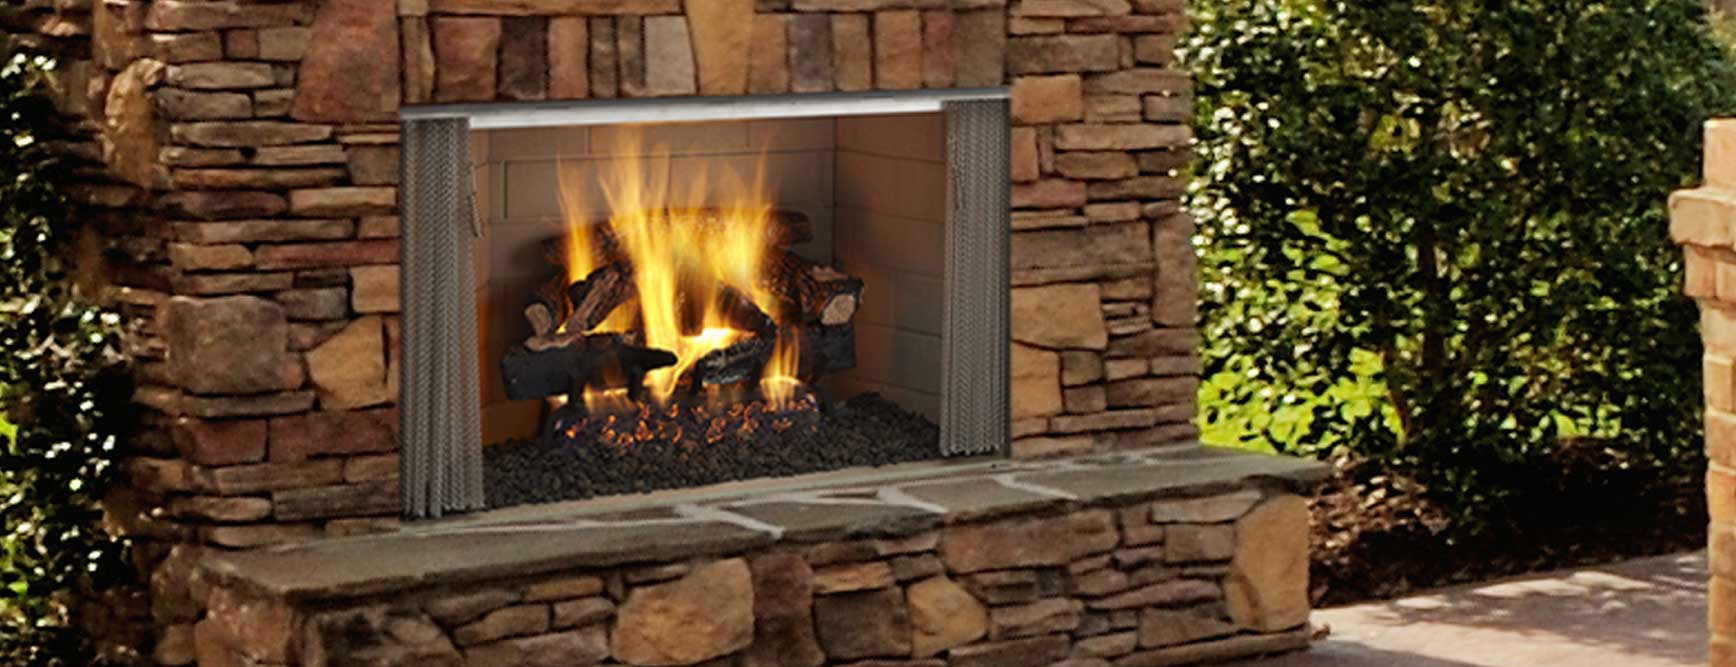 Outdoor fireplaces holiday enjoyment louisville ky for Firerock fireplaces